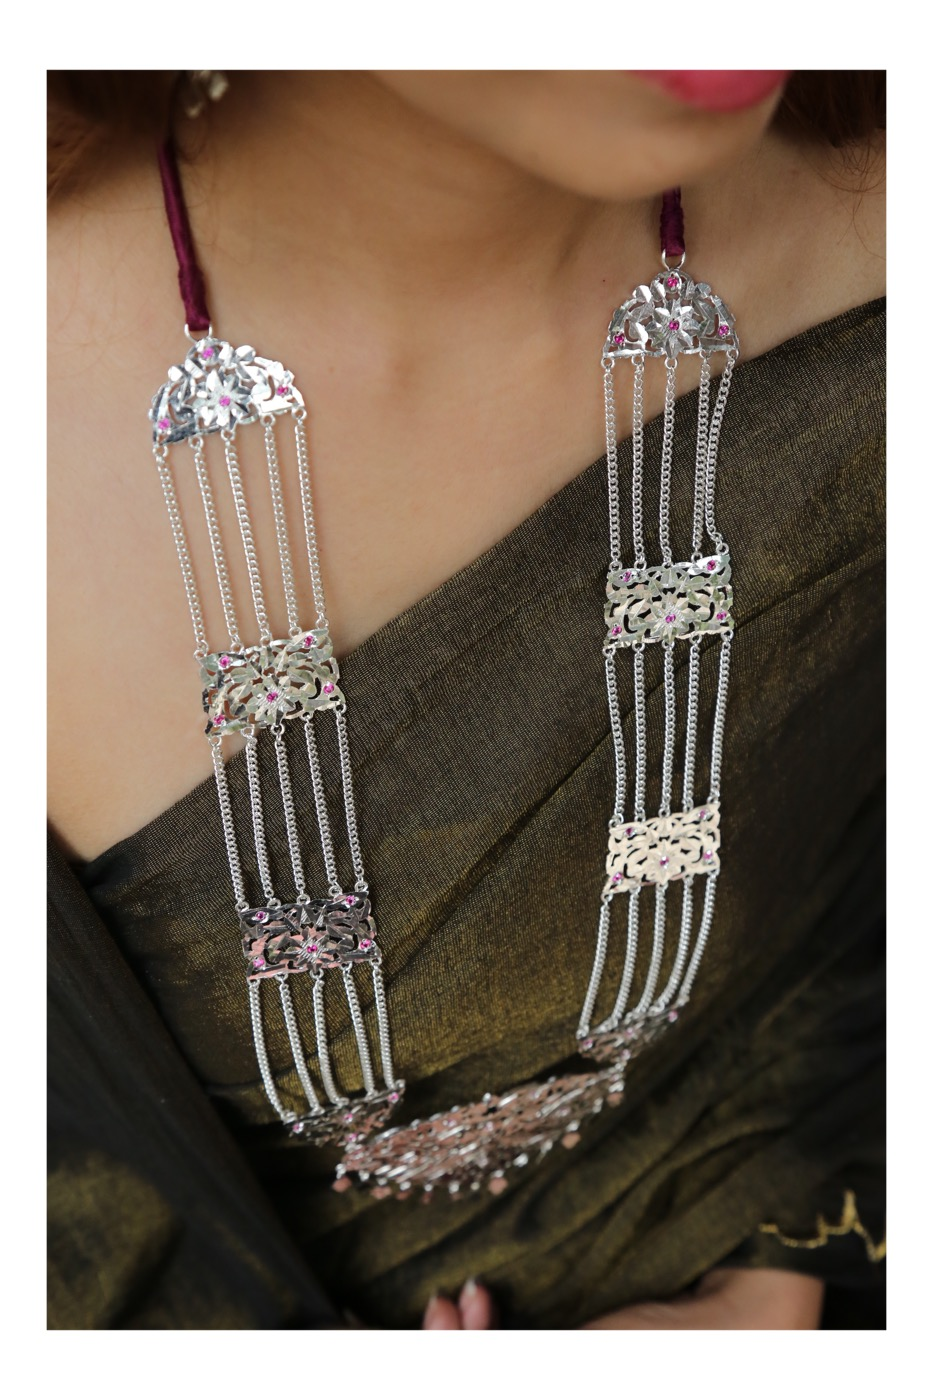 Rani Handmade Silver Necklace and Earrings Set